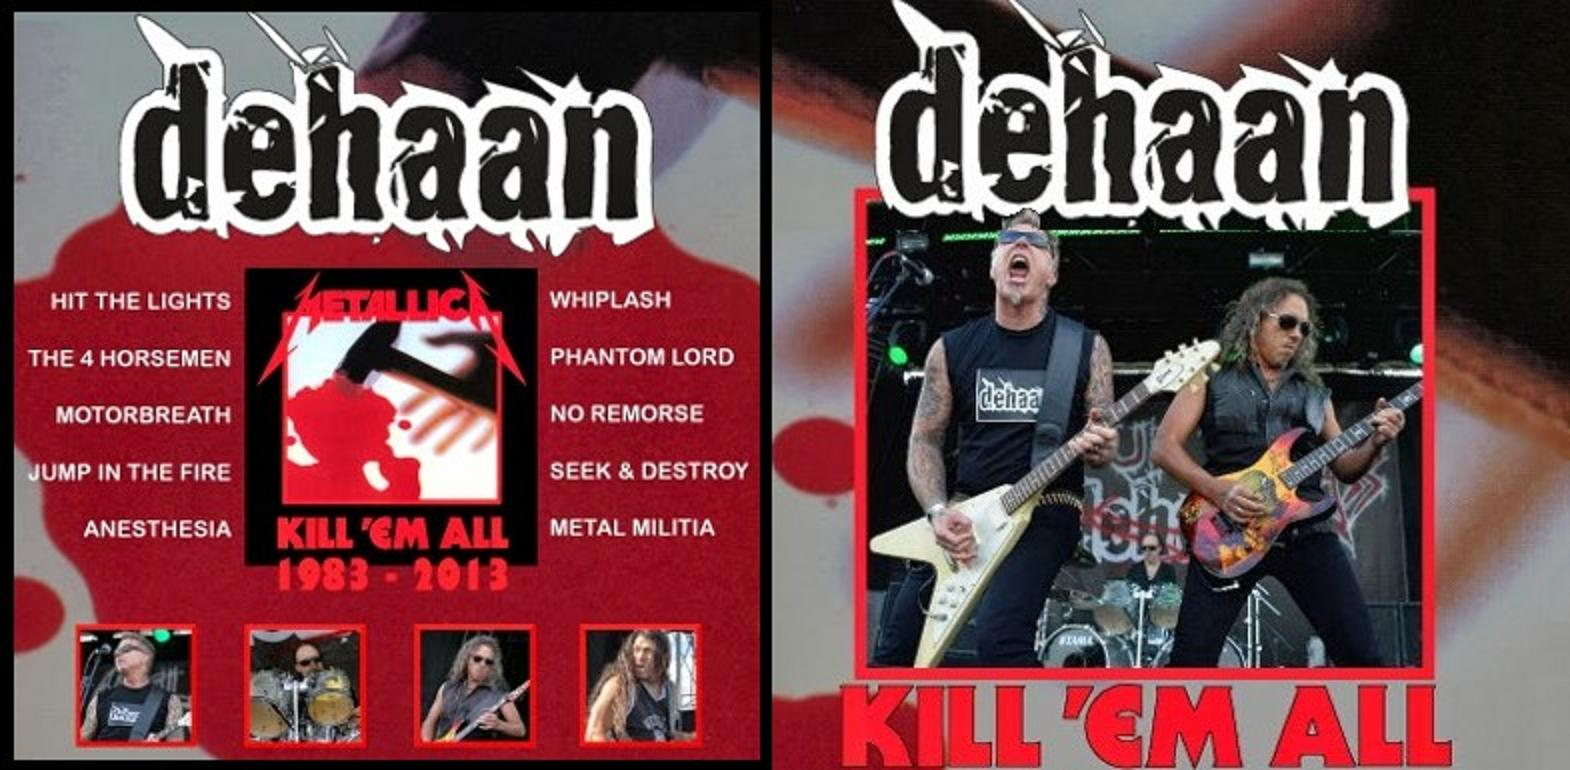 2013-06-08-Kill_em_all_live_Detroit_Deehan-front